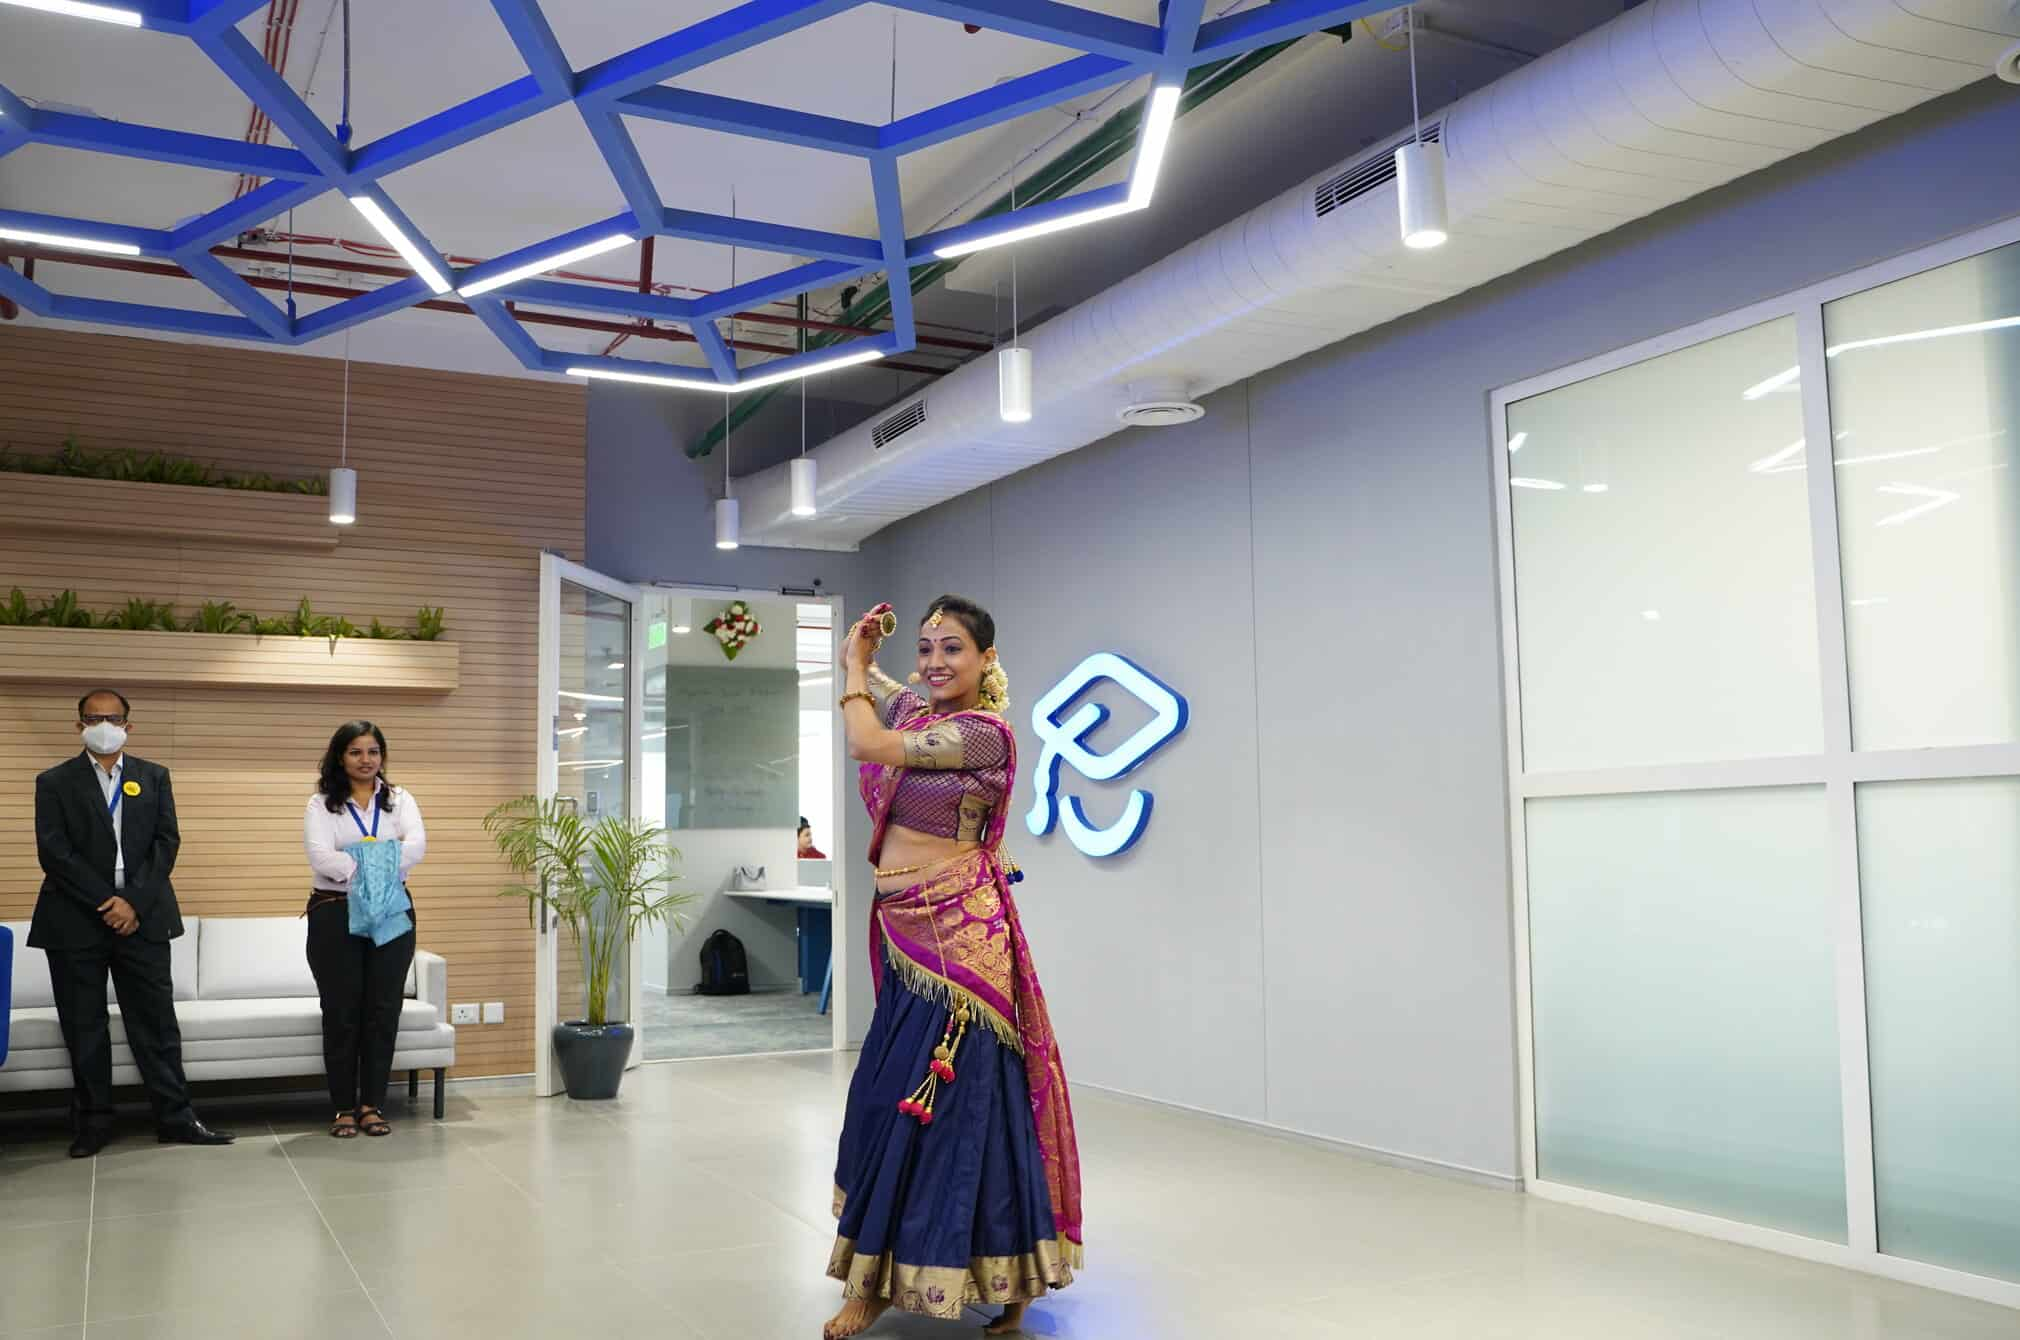 A woman dancing in the new India office.